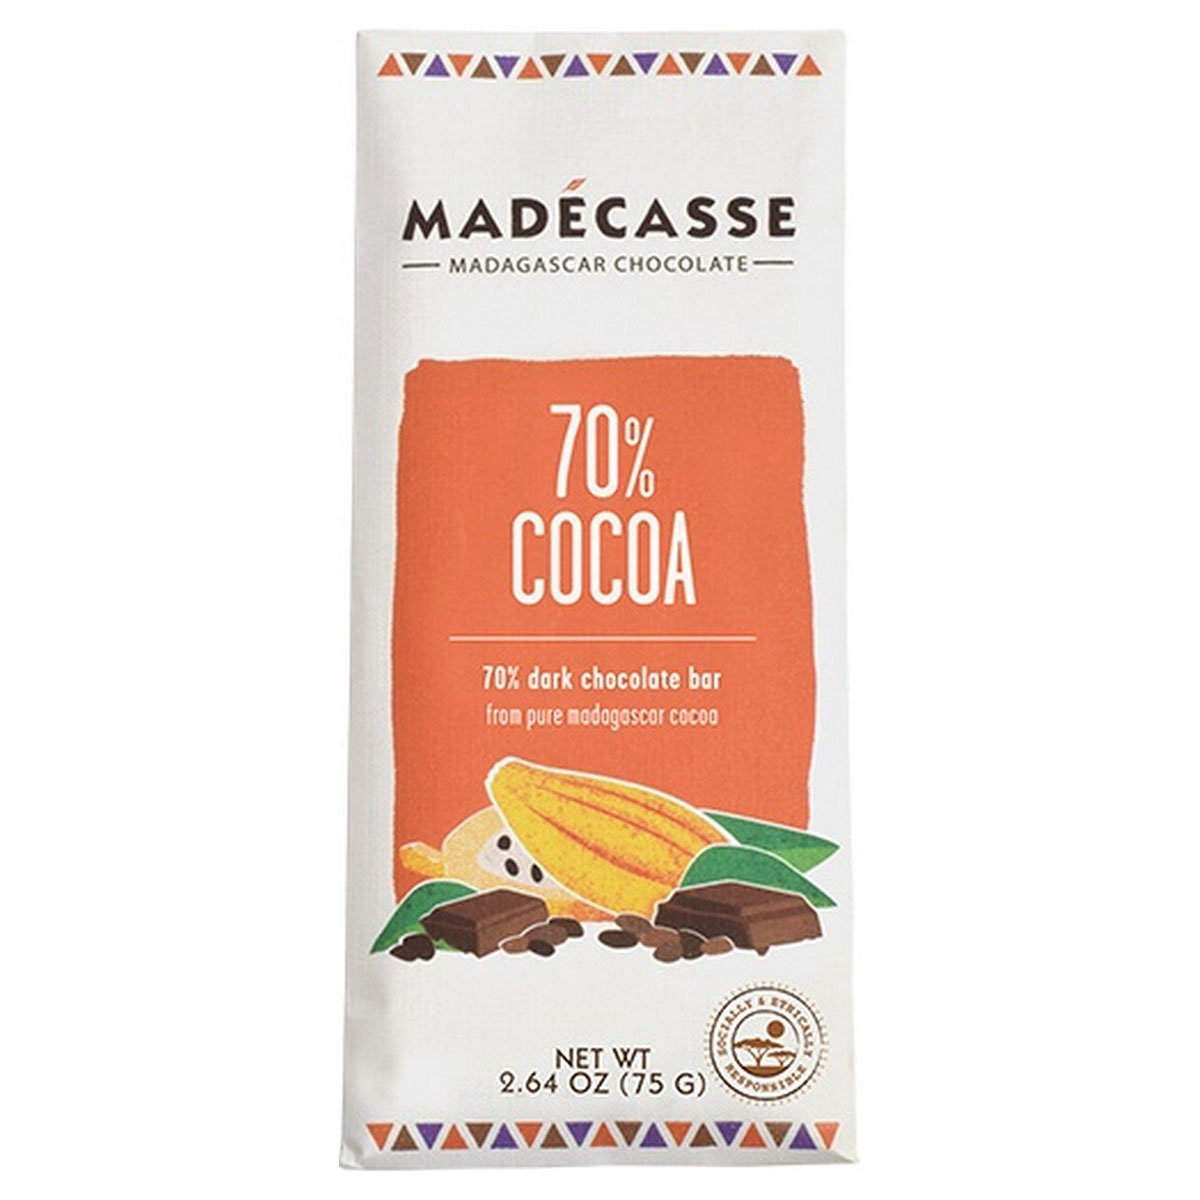 Madecasse Discs, Dark Chocolate, 70% Cocoa - (Case of 10 ...